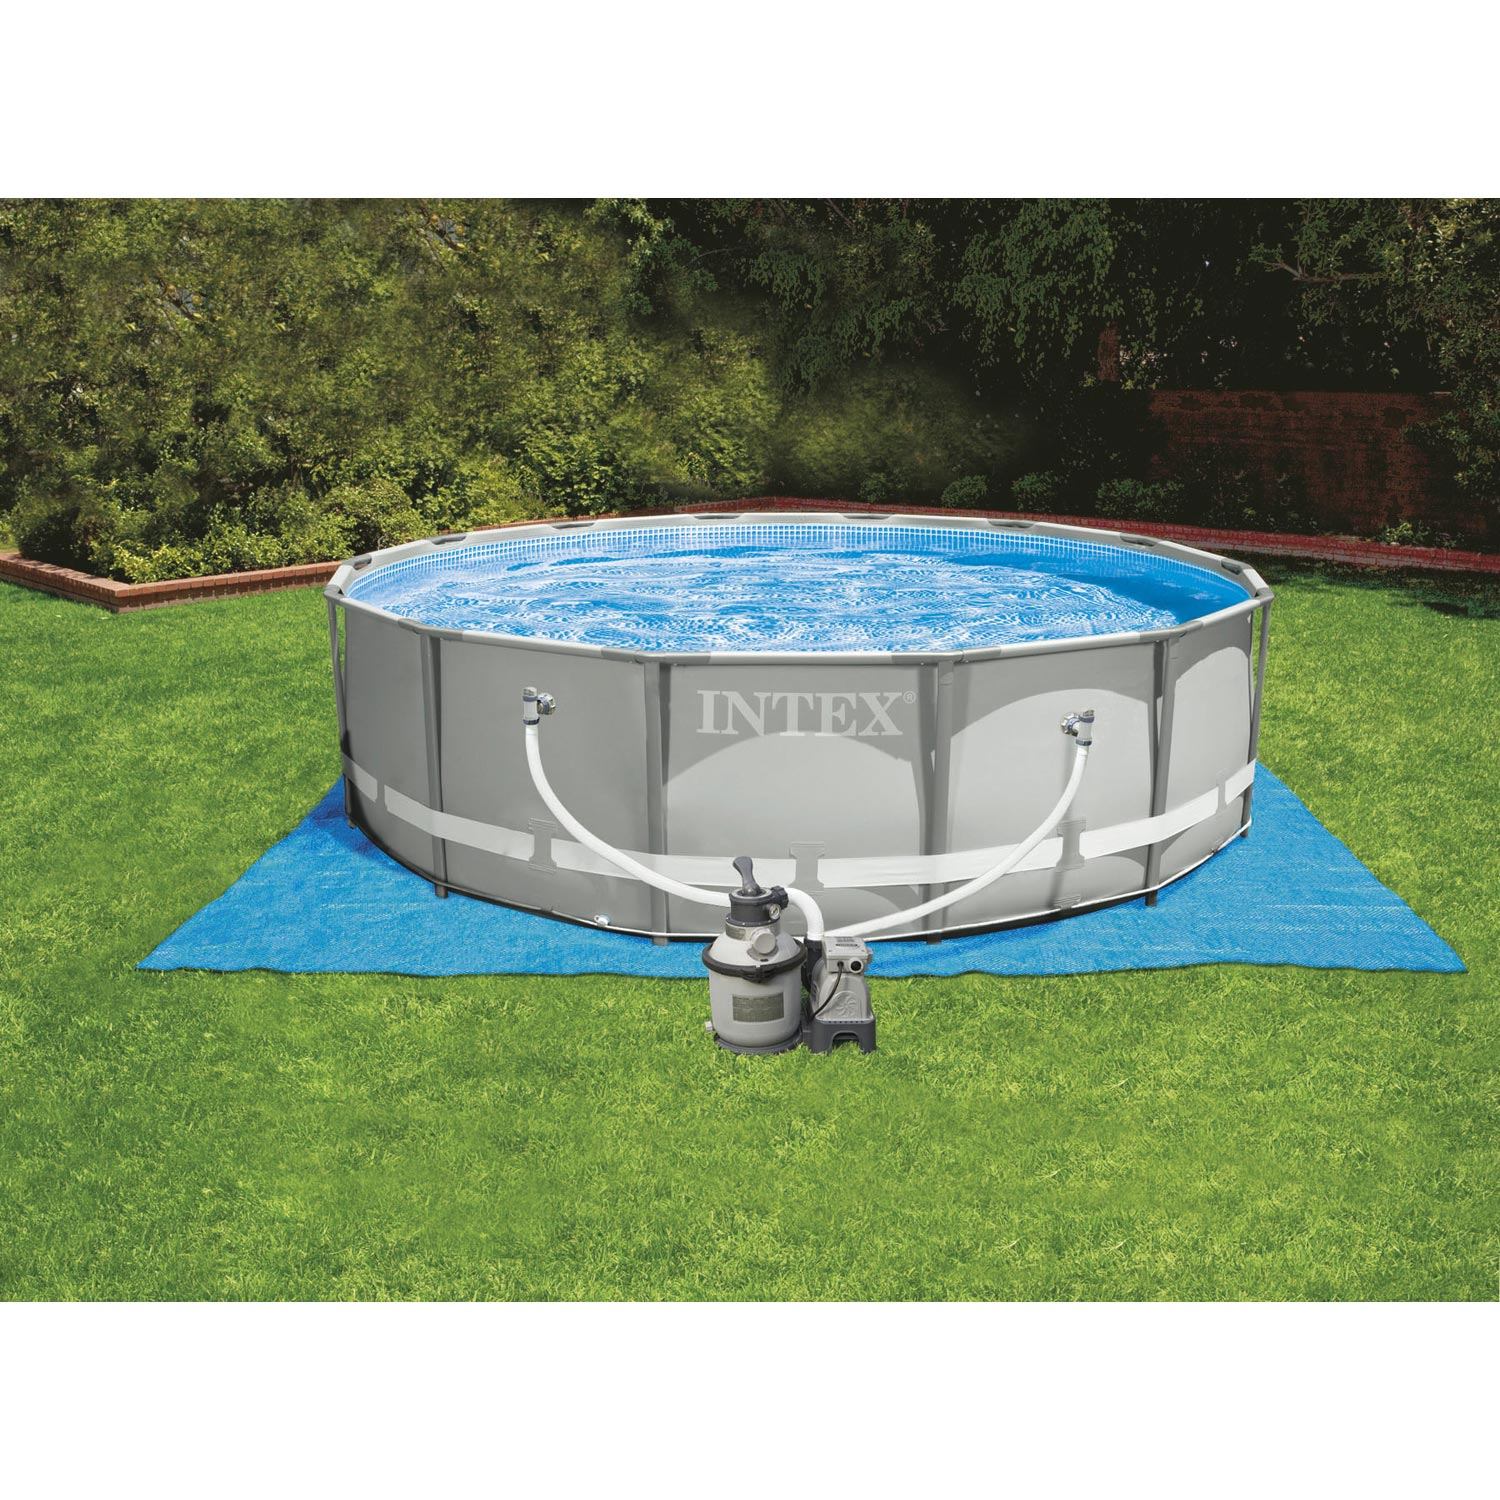 Piscine hors sol autoportante tubulaire ultra frame intex for Piscine d occasion hors sol